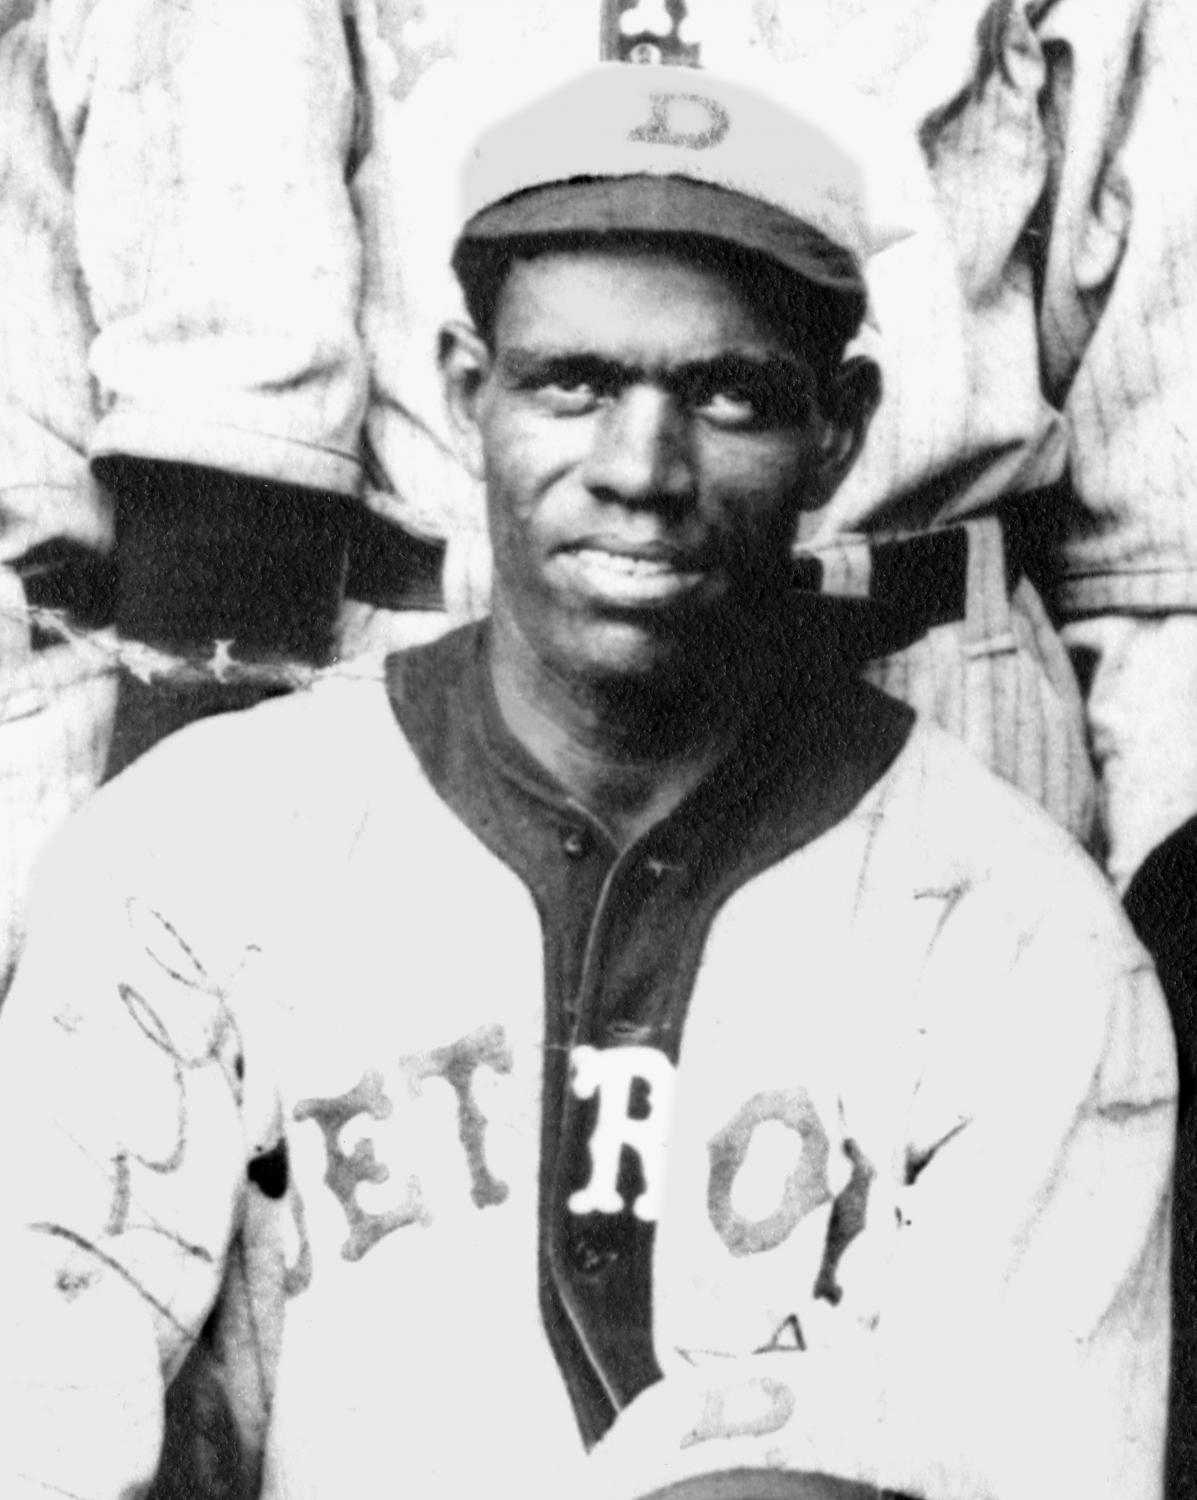 Pete Hill (NATIONAL BASEBALL HALL OF FAME LIBRARY)